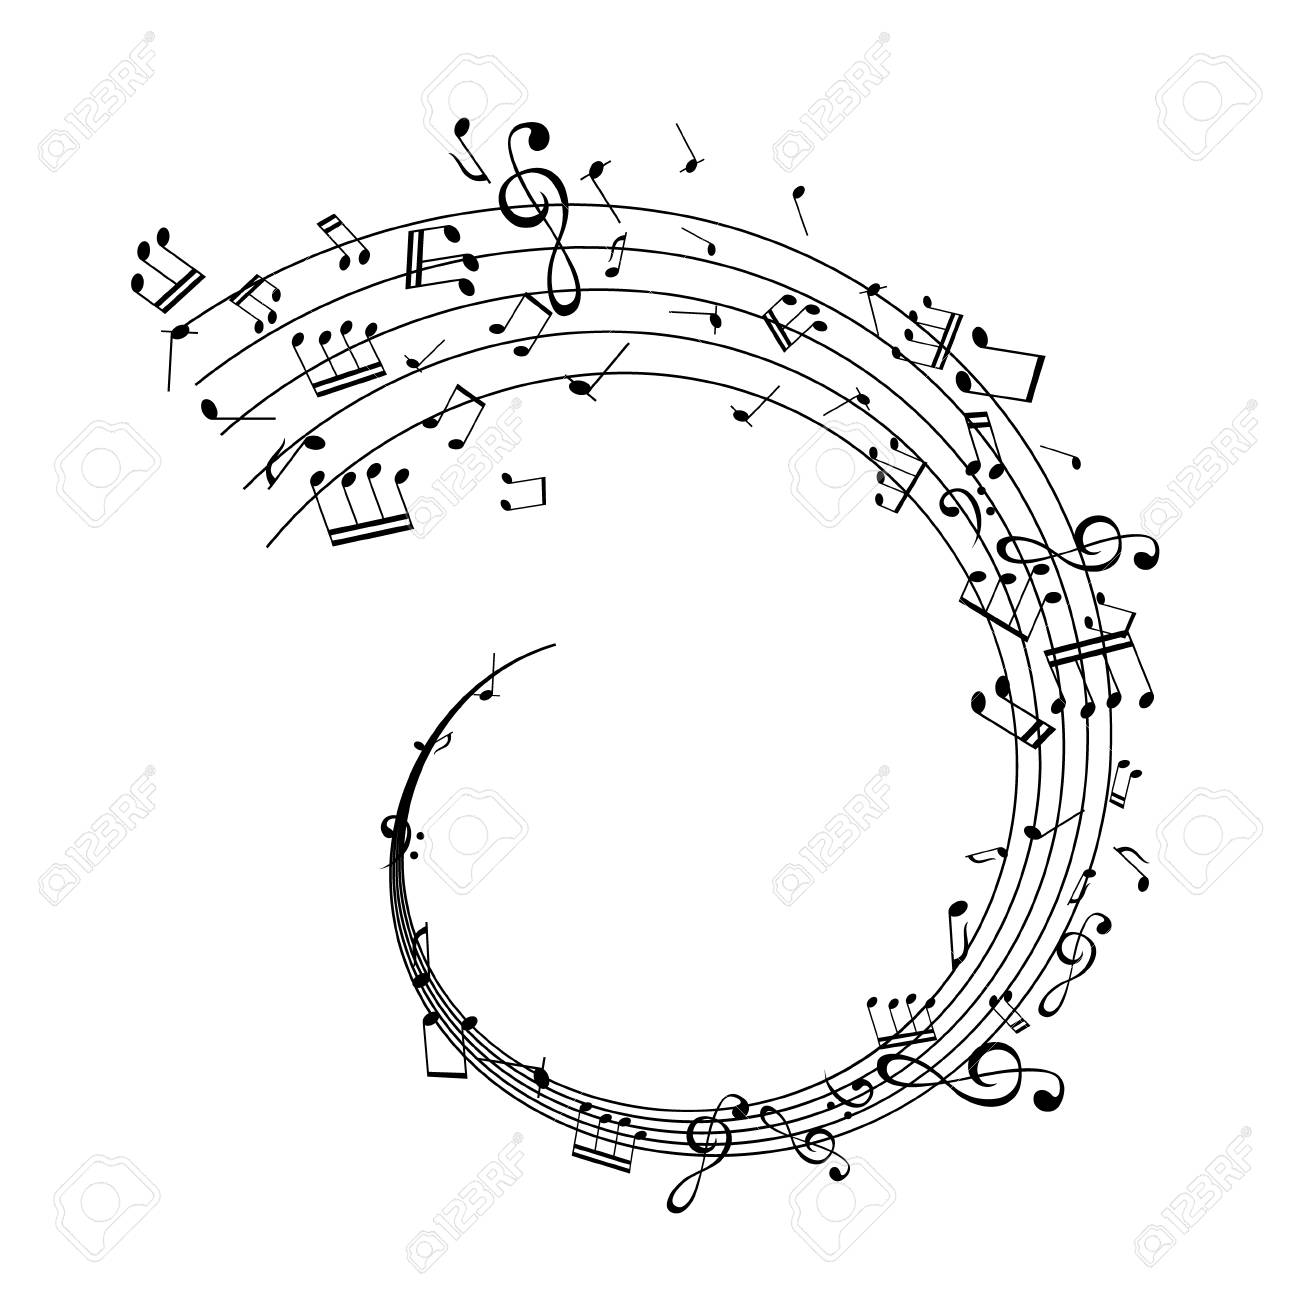 Notes on the swirl. Music decoration element isolated on the white background. - 97019060